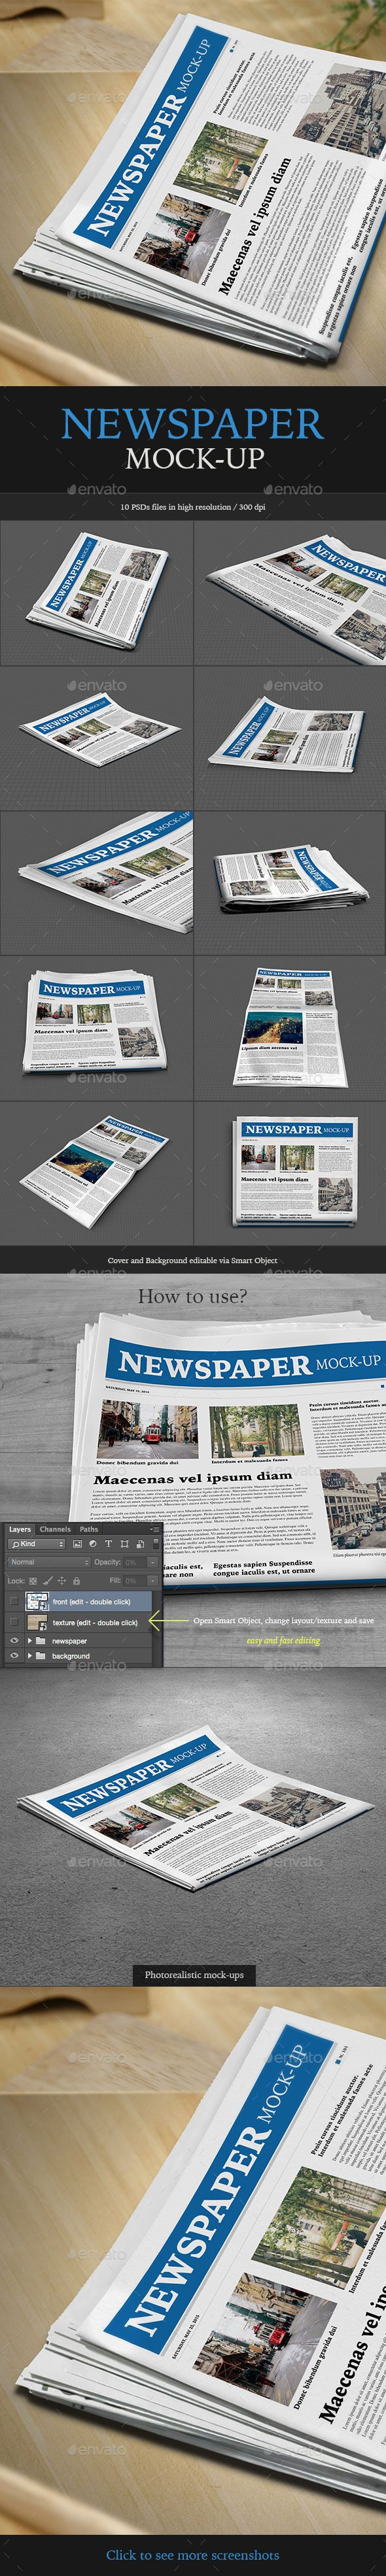 Newspaper Mock-up #design Download: http://graphicriver.net/item/newspaper-mockup/11650840?ref=ksioks